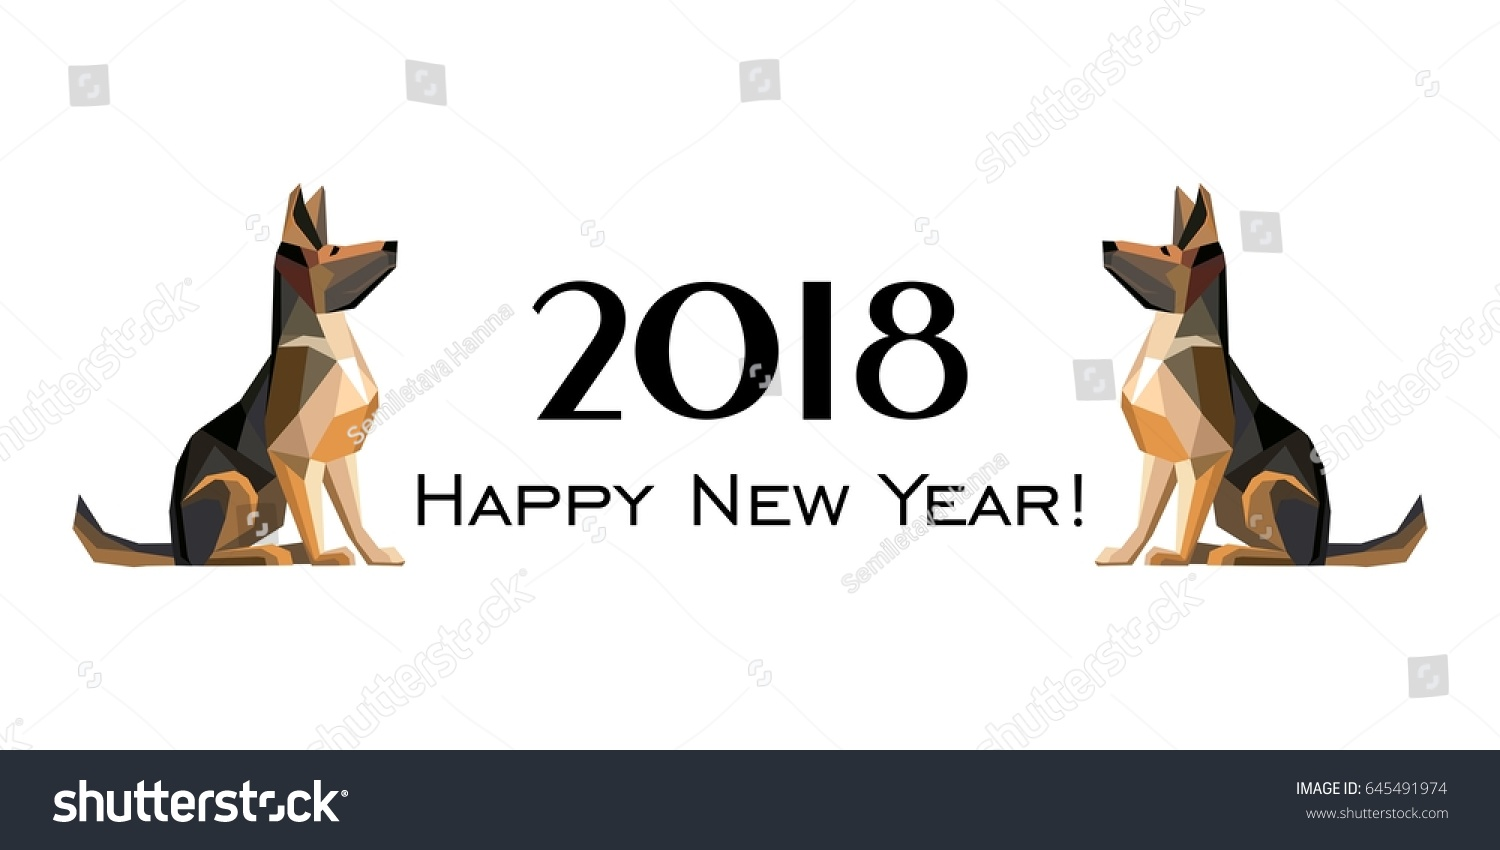 2018 happy new year greeting card stock vector royalty free 2018 happy new year greeting card celebration white background with dog german shepherd and place m4hsunfo